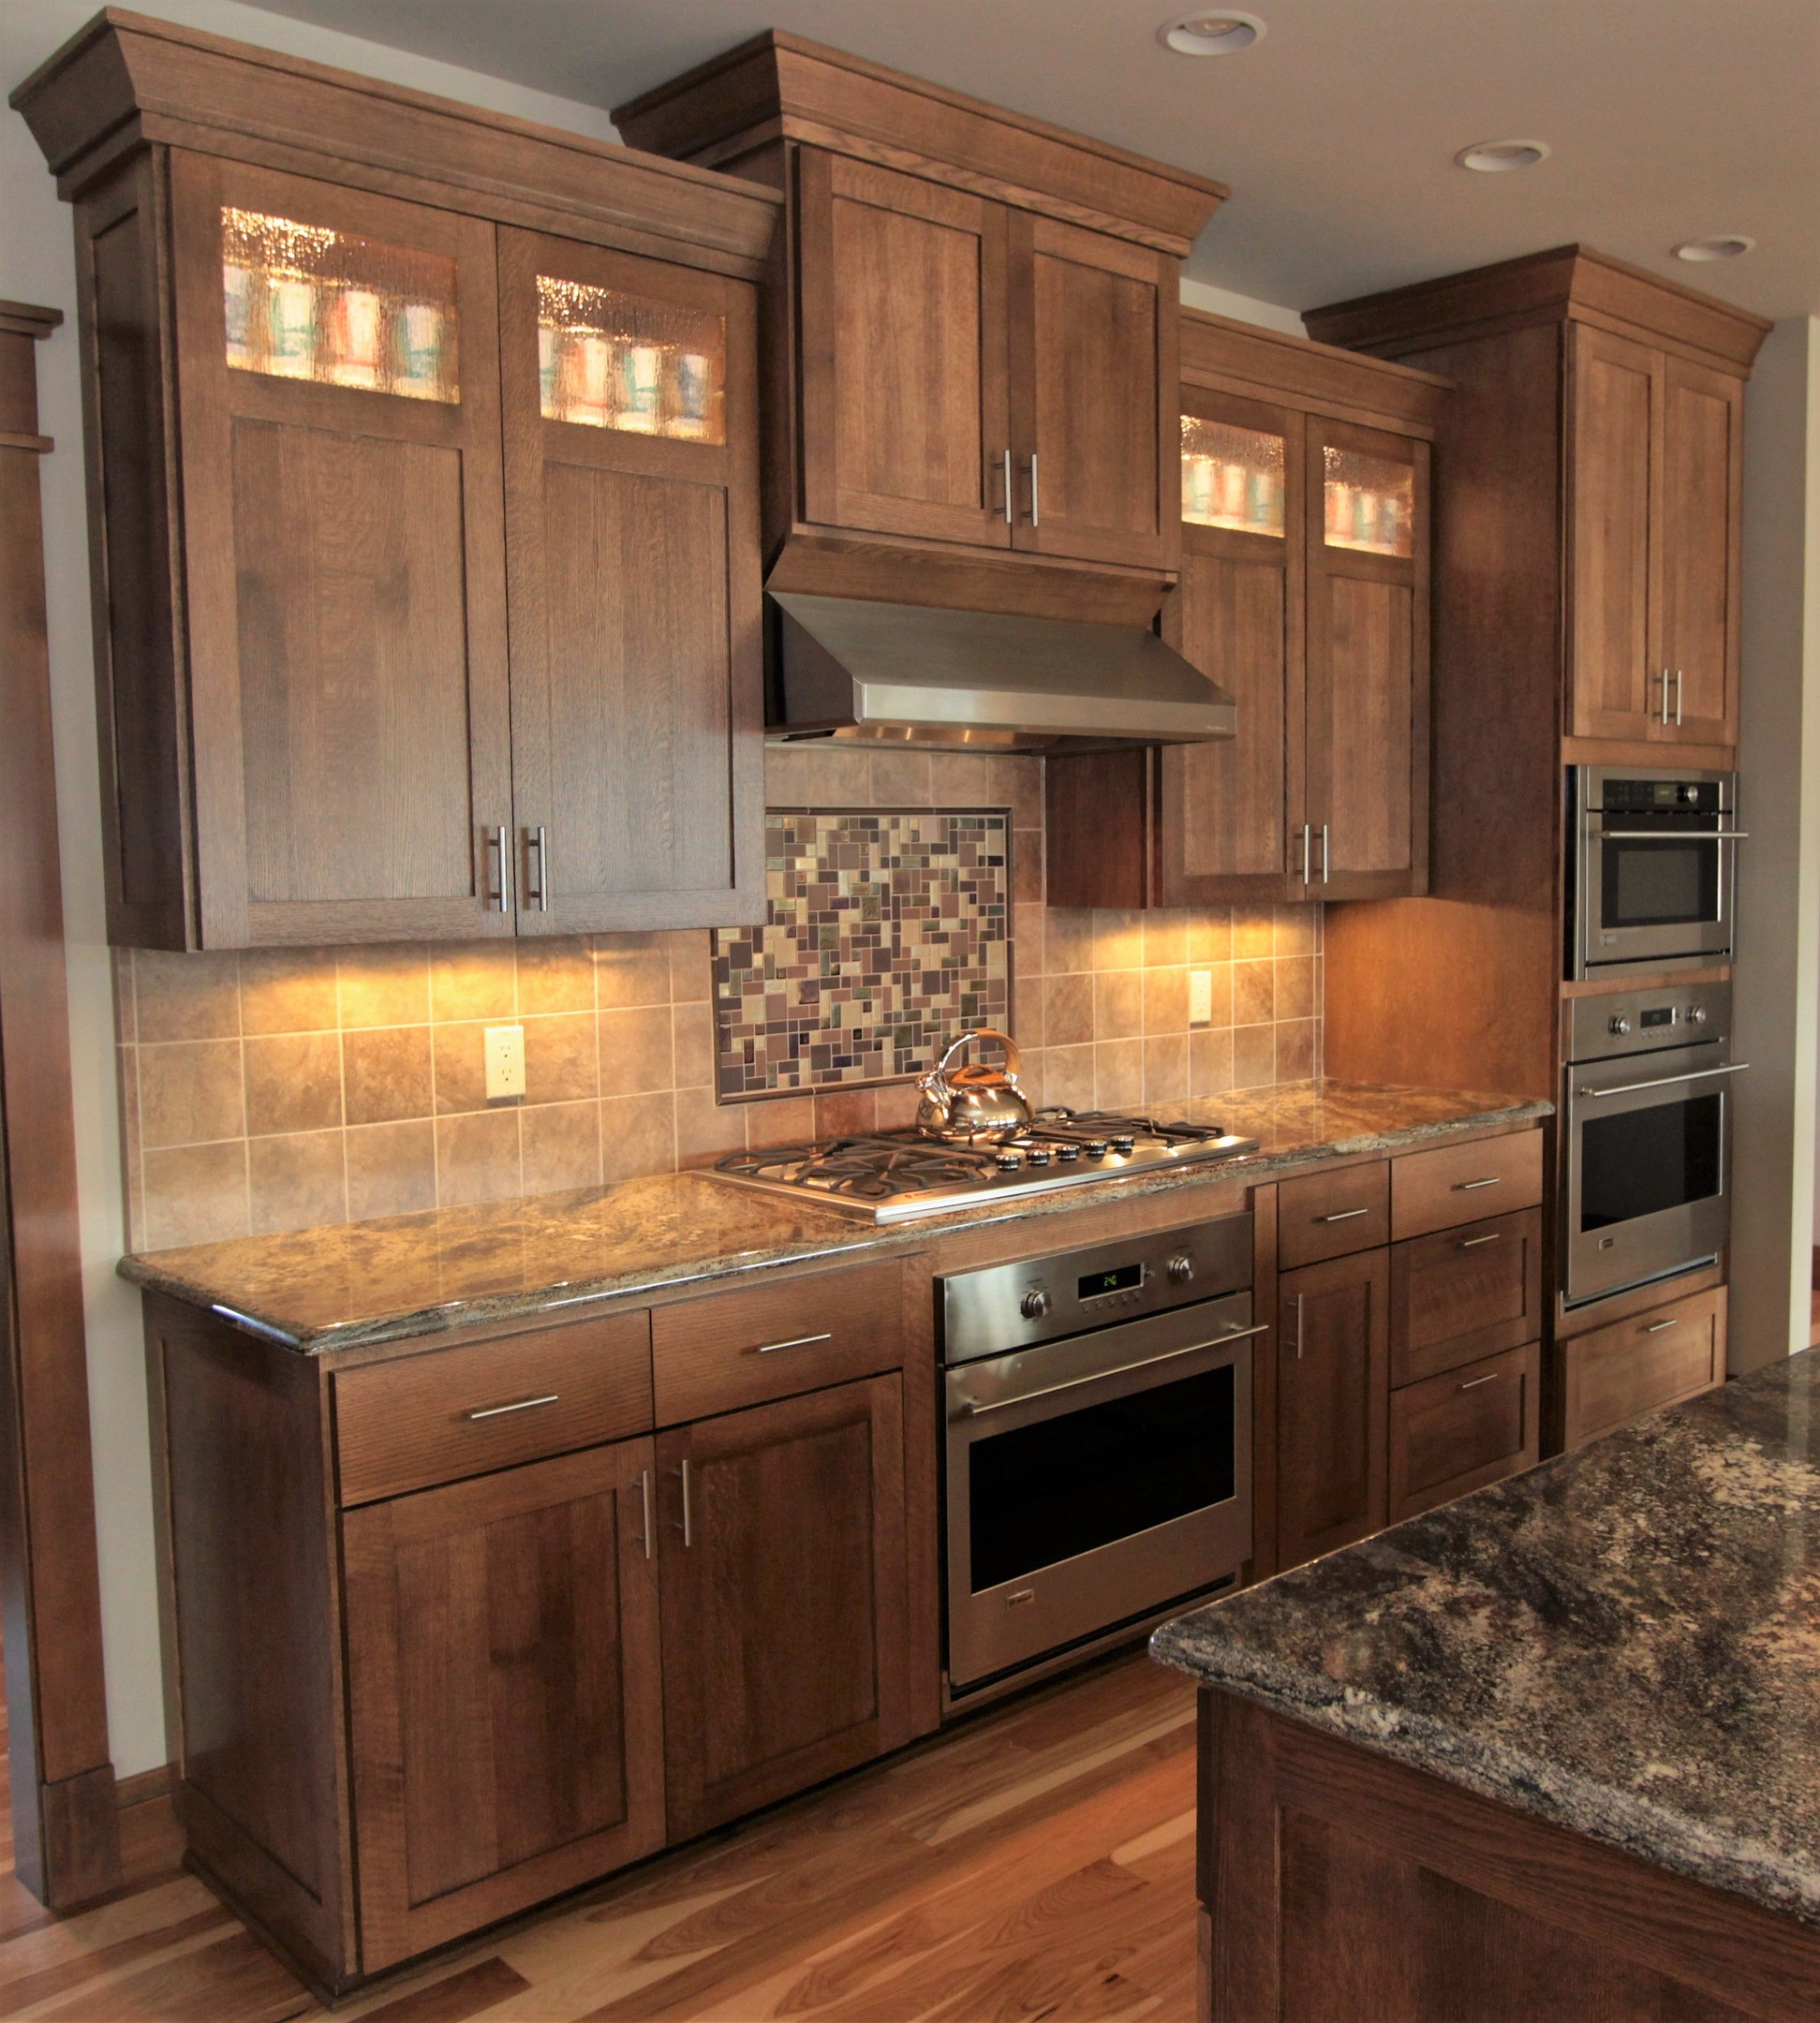 Affordable custom cabinets showroom for Dark oak kitchen cabinets